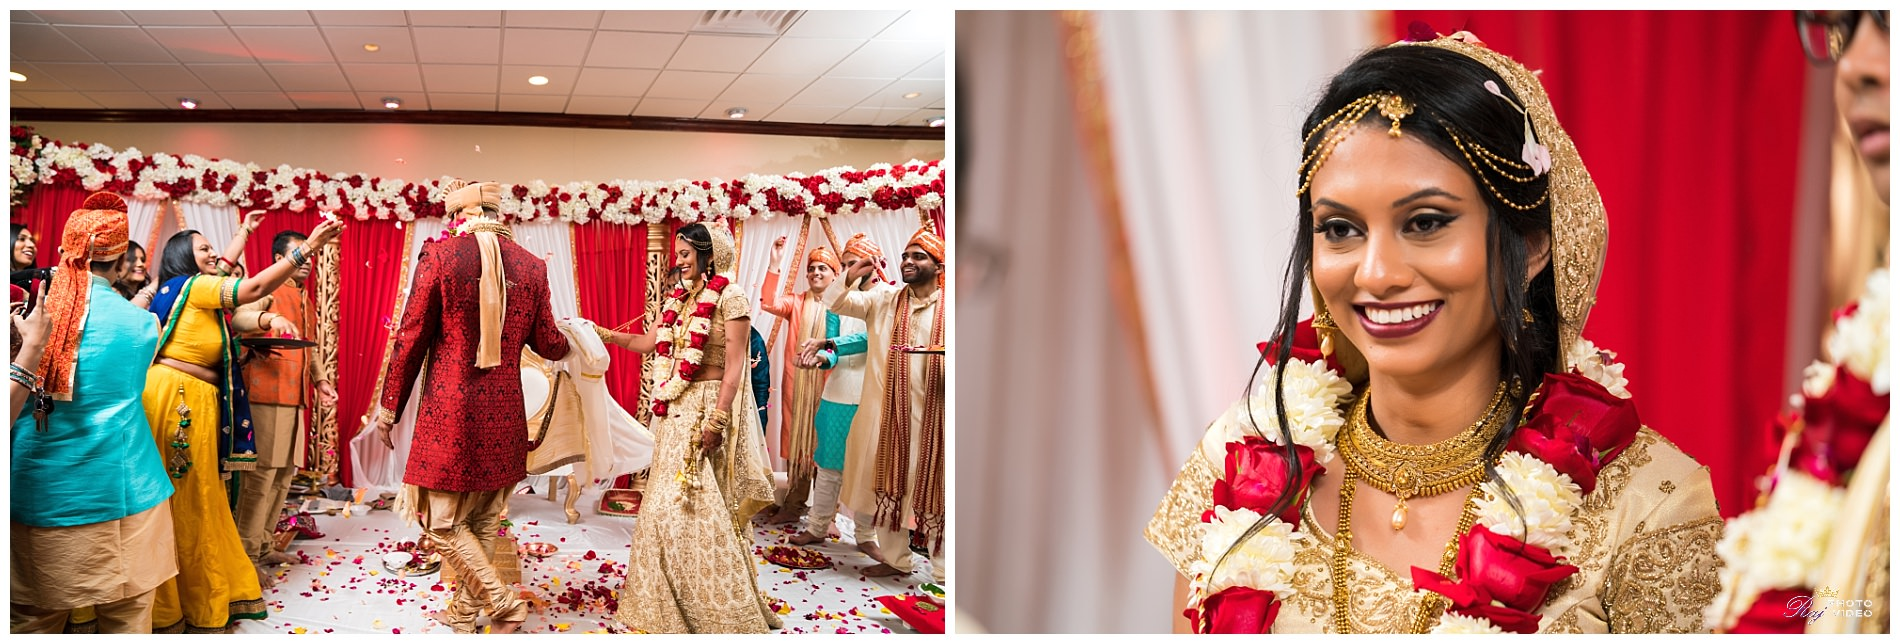 Aashirwad-Palace-Randolph-NJ-Hindu-Wedding-Ceremony-Khusbu-Jeff-17.jpg